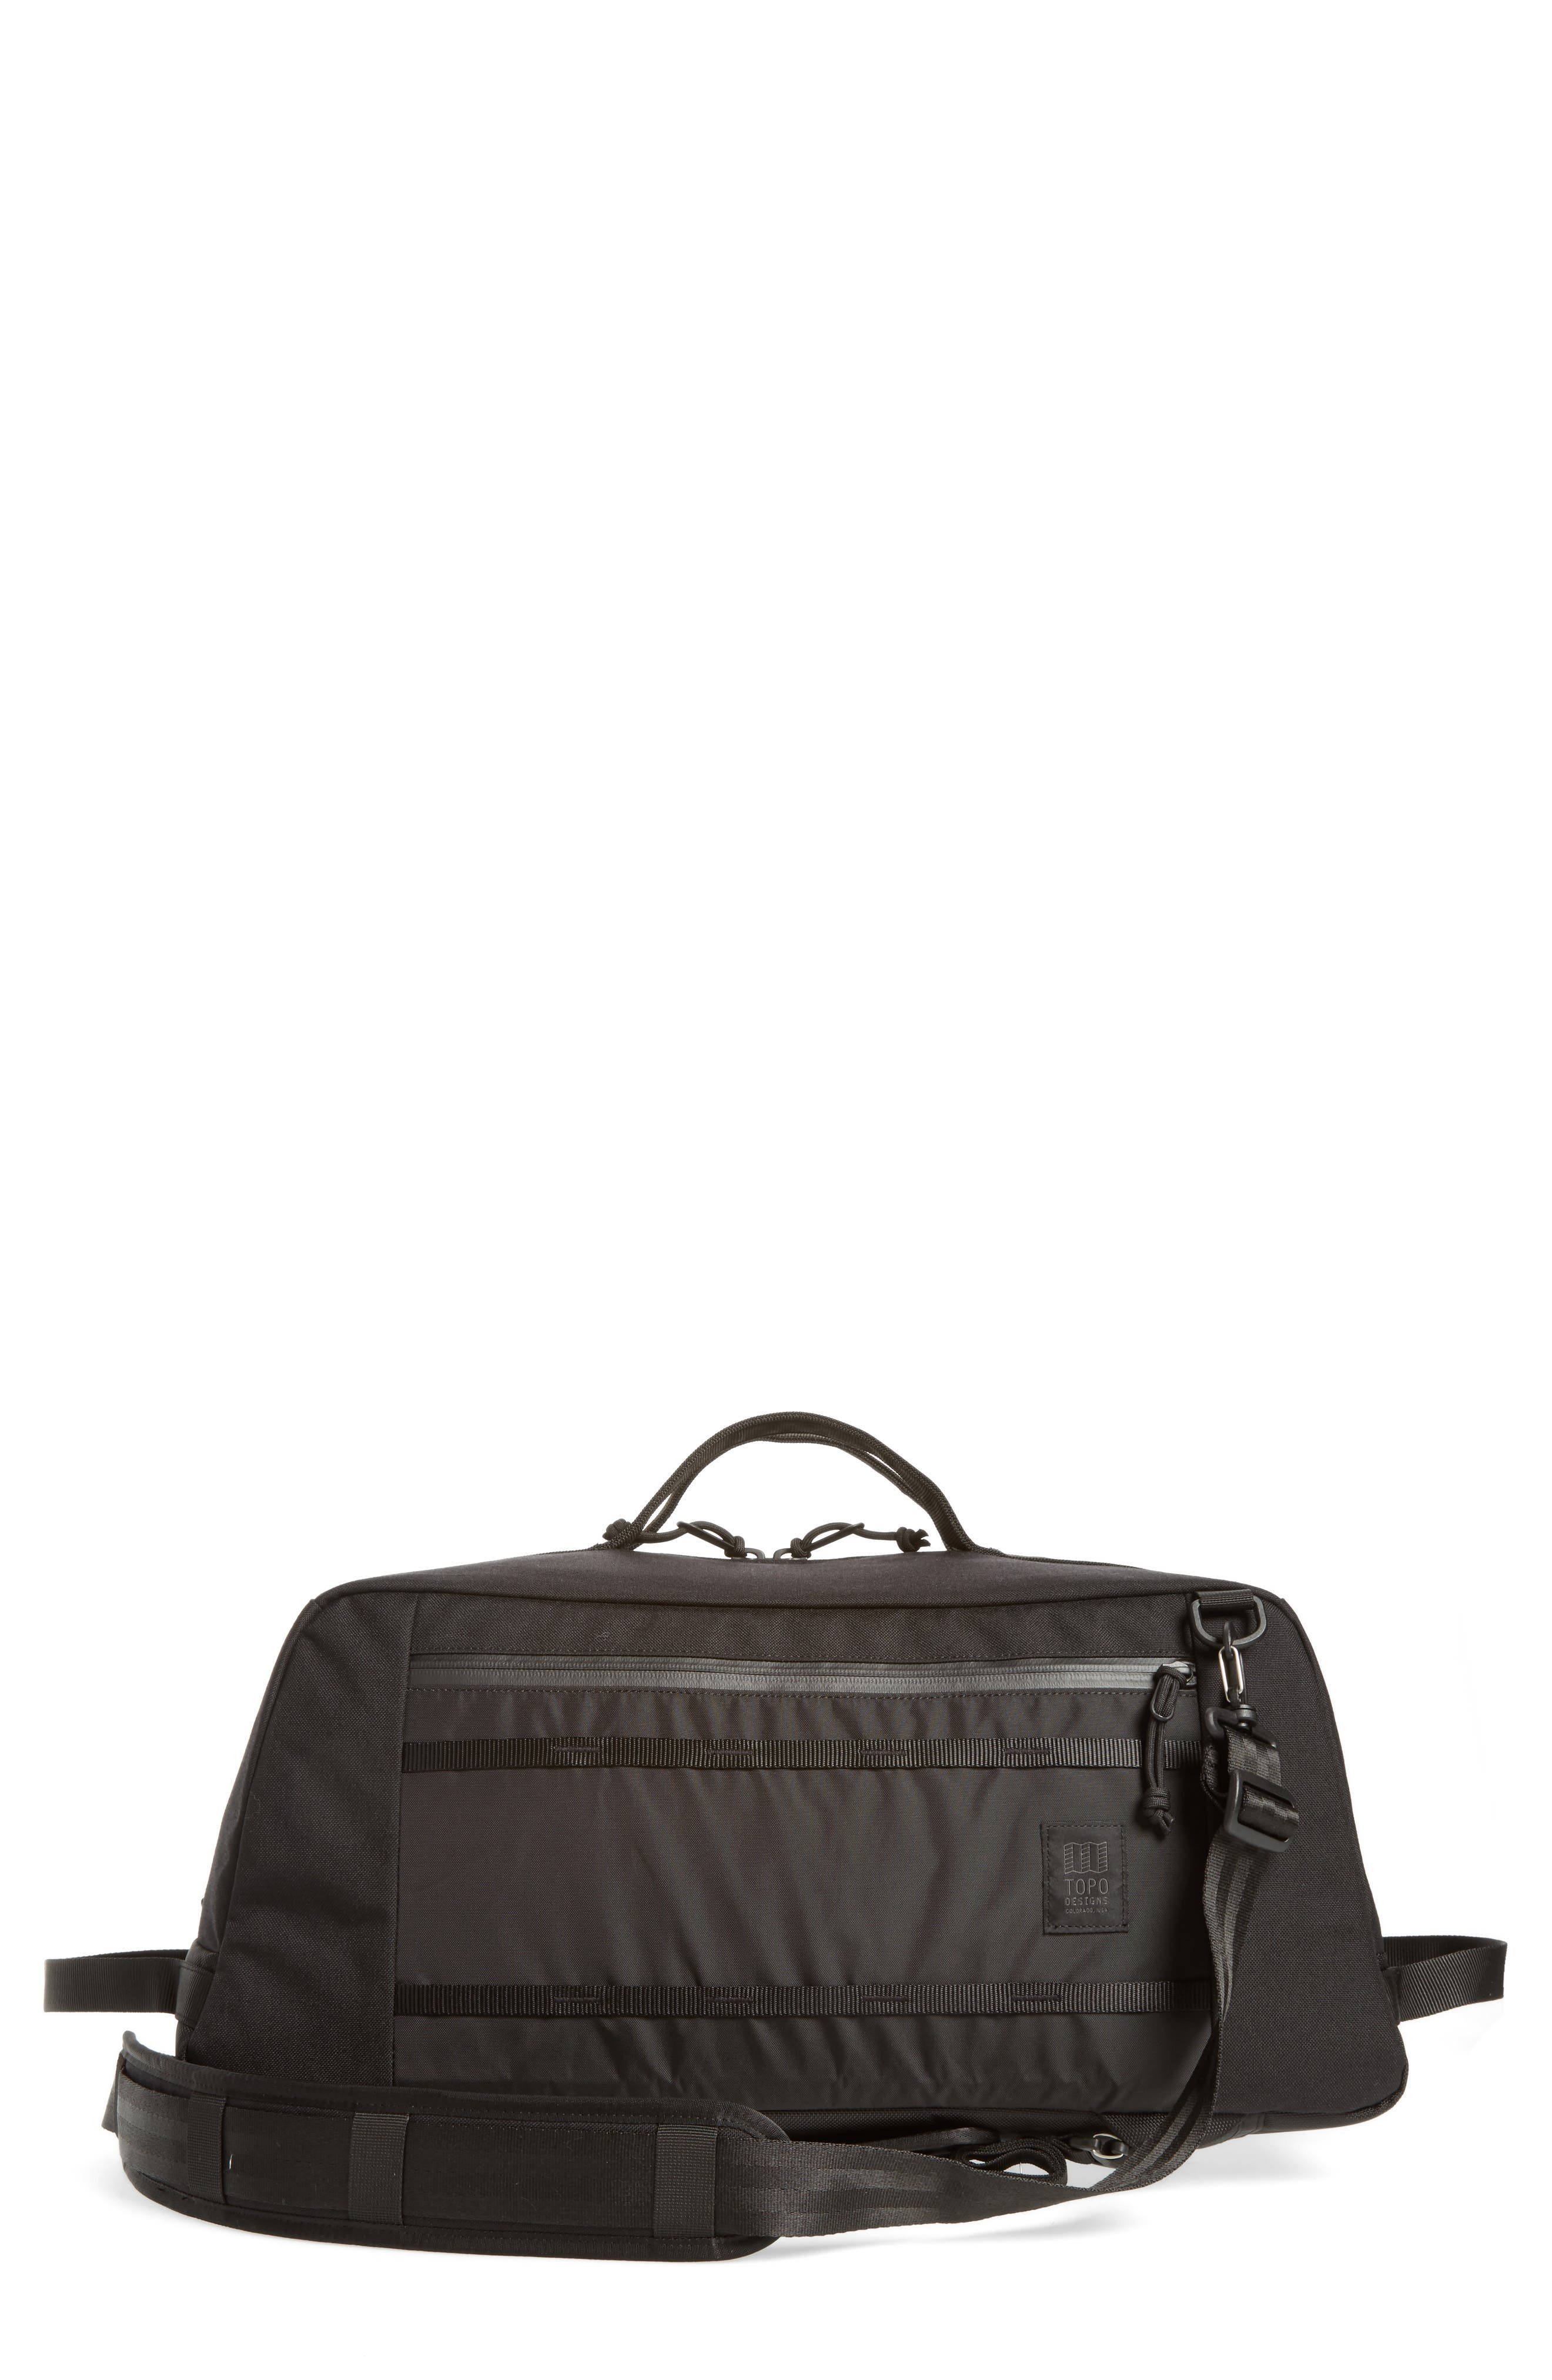 Mountain Convertible Duffel Bag,                         Main,                         color, BLACK